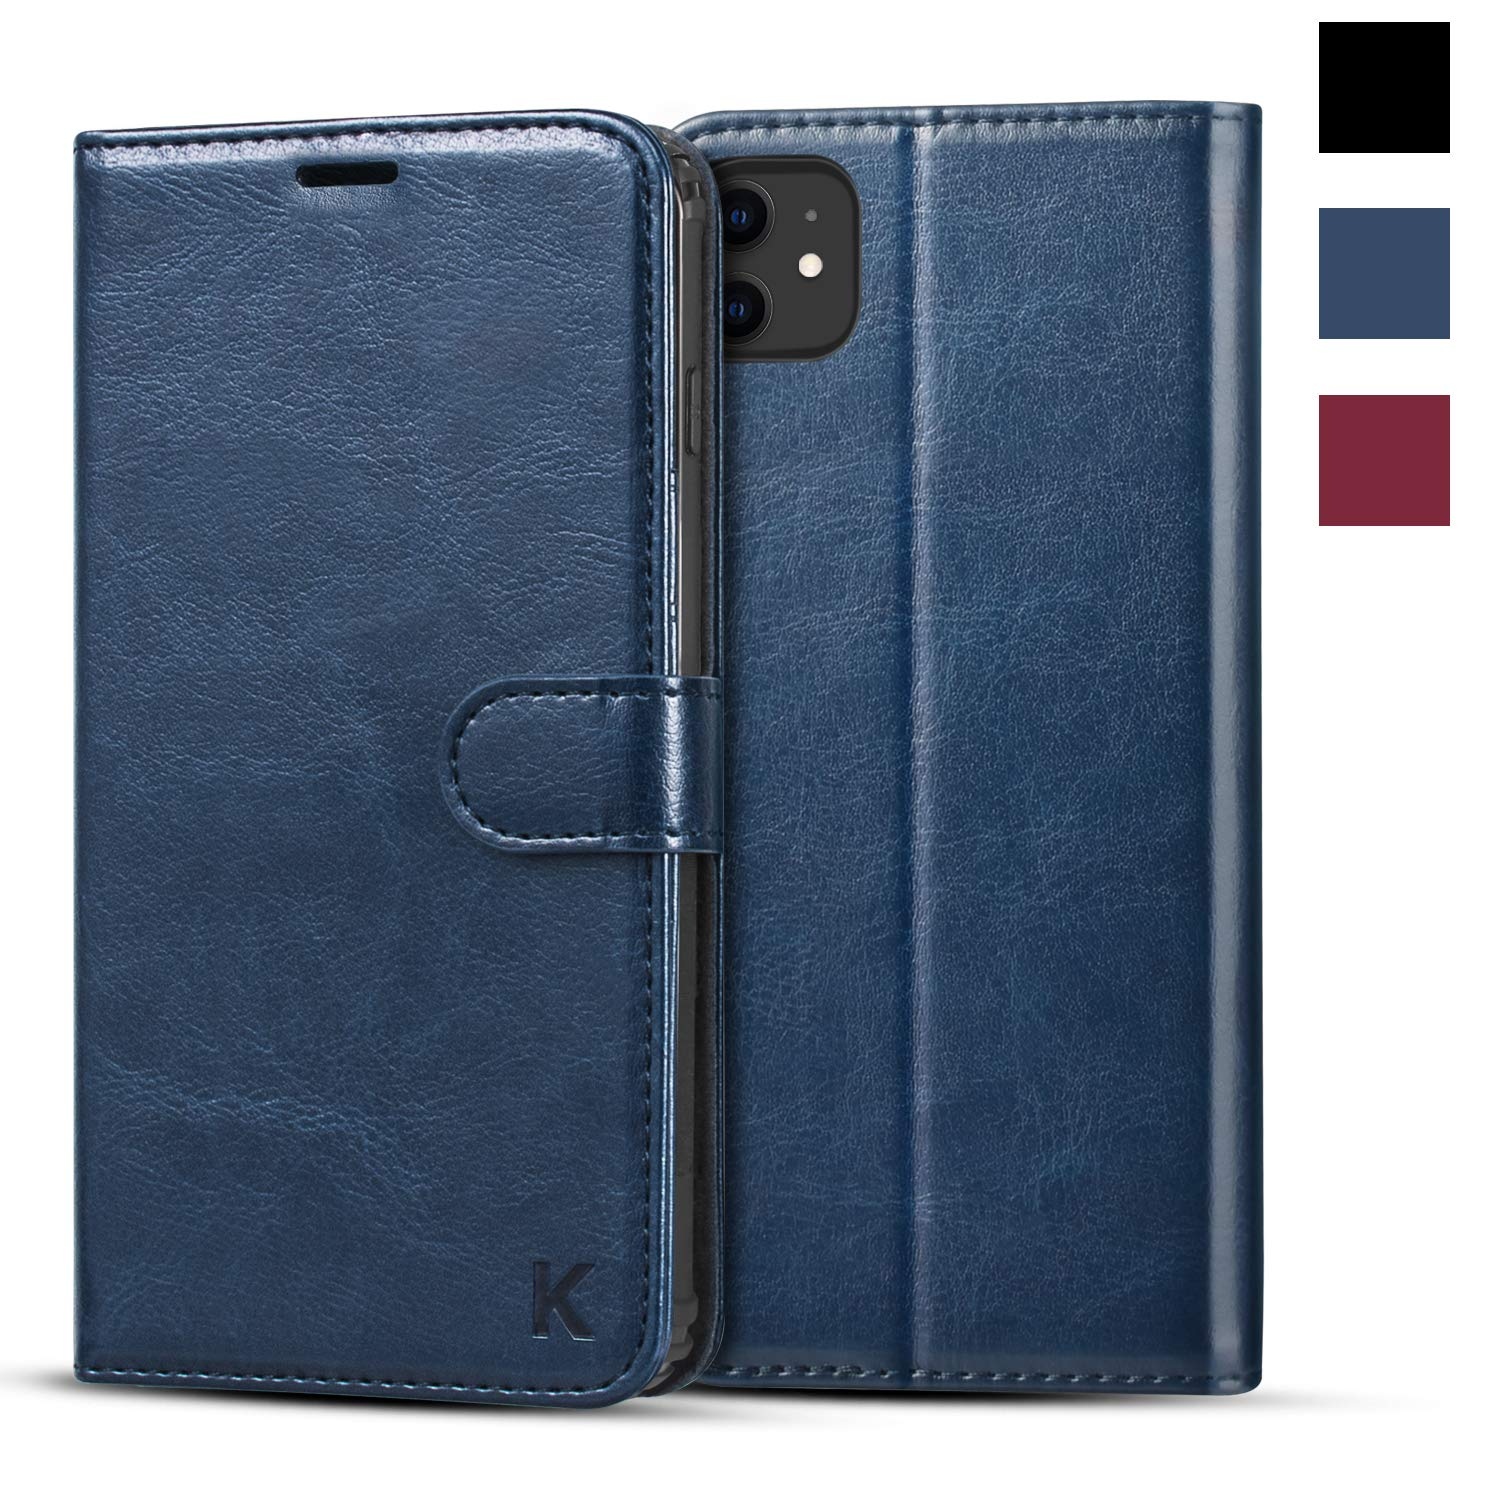 KILINO iPhone 11 Wallet Case [Premium Leather] [Soft TPU] [RFID Blocking] [Shock-Absorbent Bumper] [Card Slots] [Kickstand] [Magnetic Closure] Flip Folio Cover for iPhone 11 - Blue